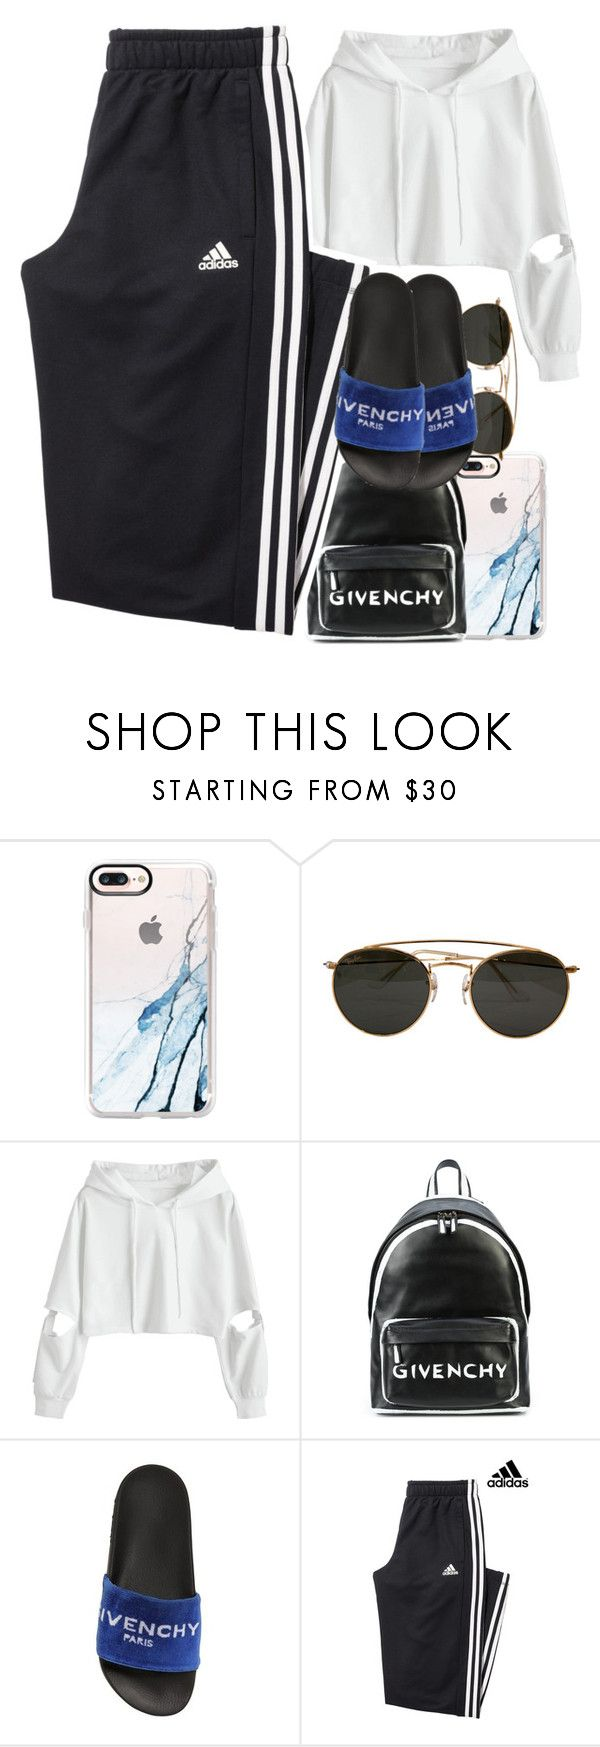 """Untitled #481"" by ccrenee-cxcv ❤ liked on Polyvore featuring Casetify, Ray-Ban, Givenchy and adidas"